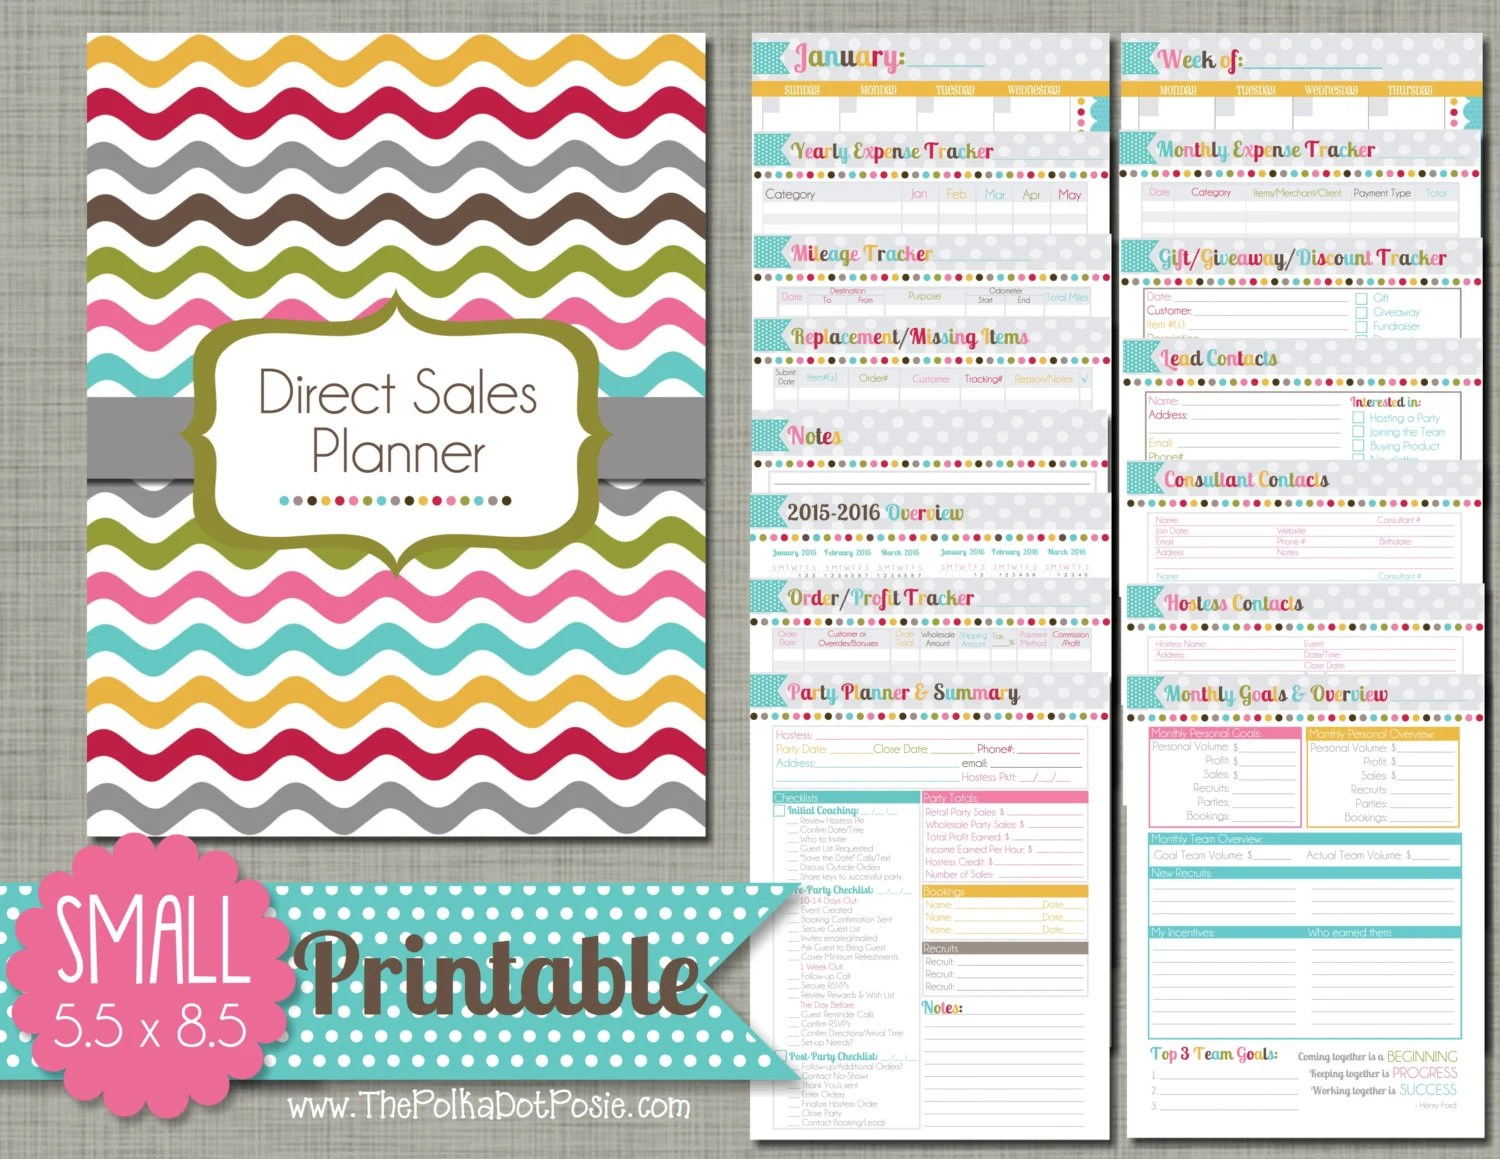 Direct Sales Planner Printable Set Sized Small 5 5 X